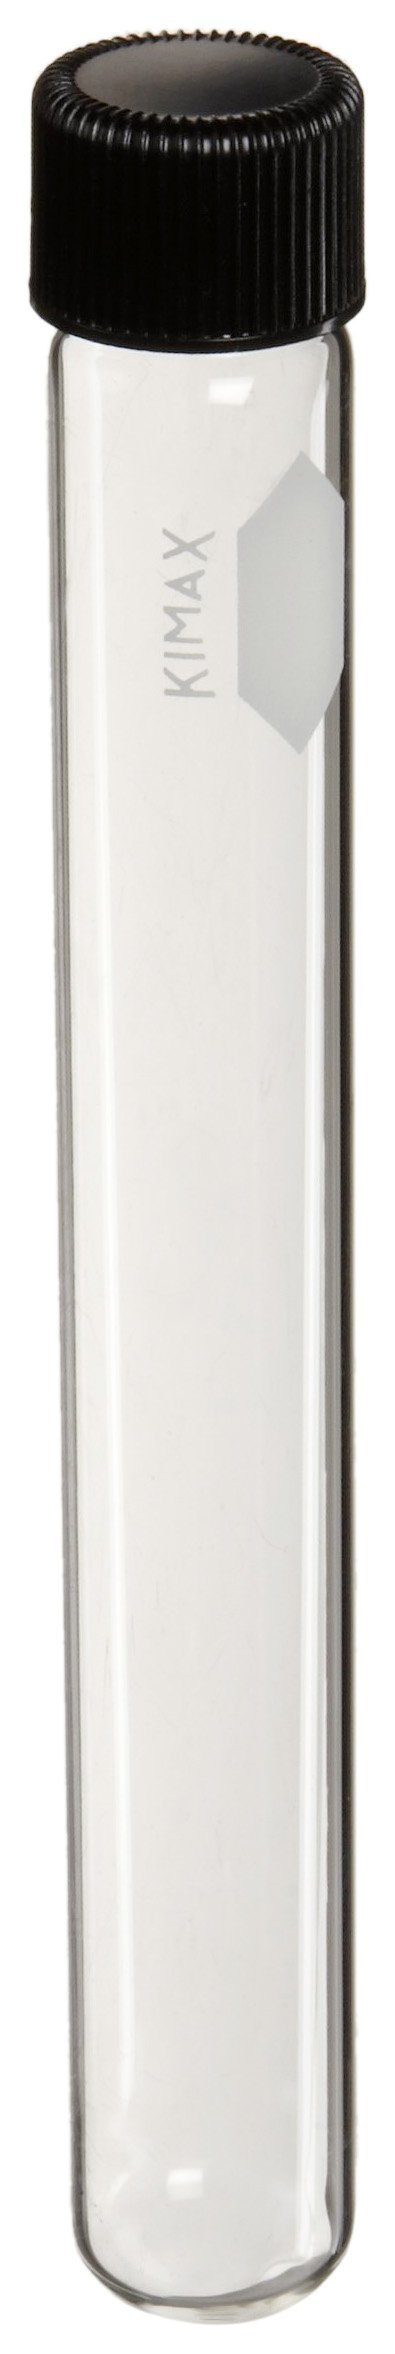 Kimax 45066A-20125 KG-33 Borosilicate Glass 25mL Screw Cap Culture Tube, with Unattached PTFE-Faced Rubber Liner (Pack of 48)